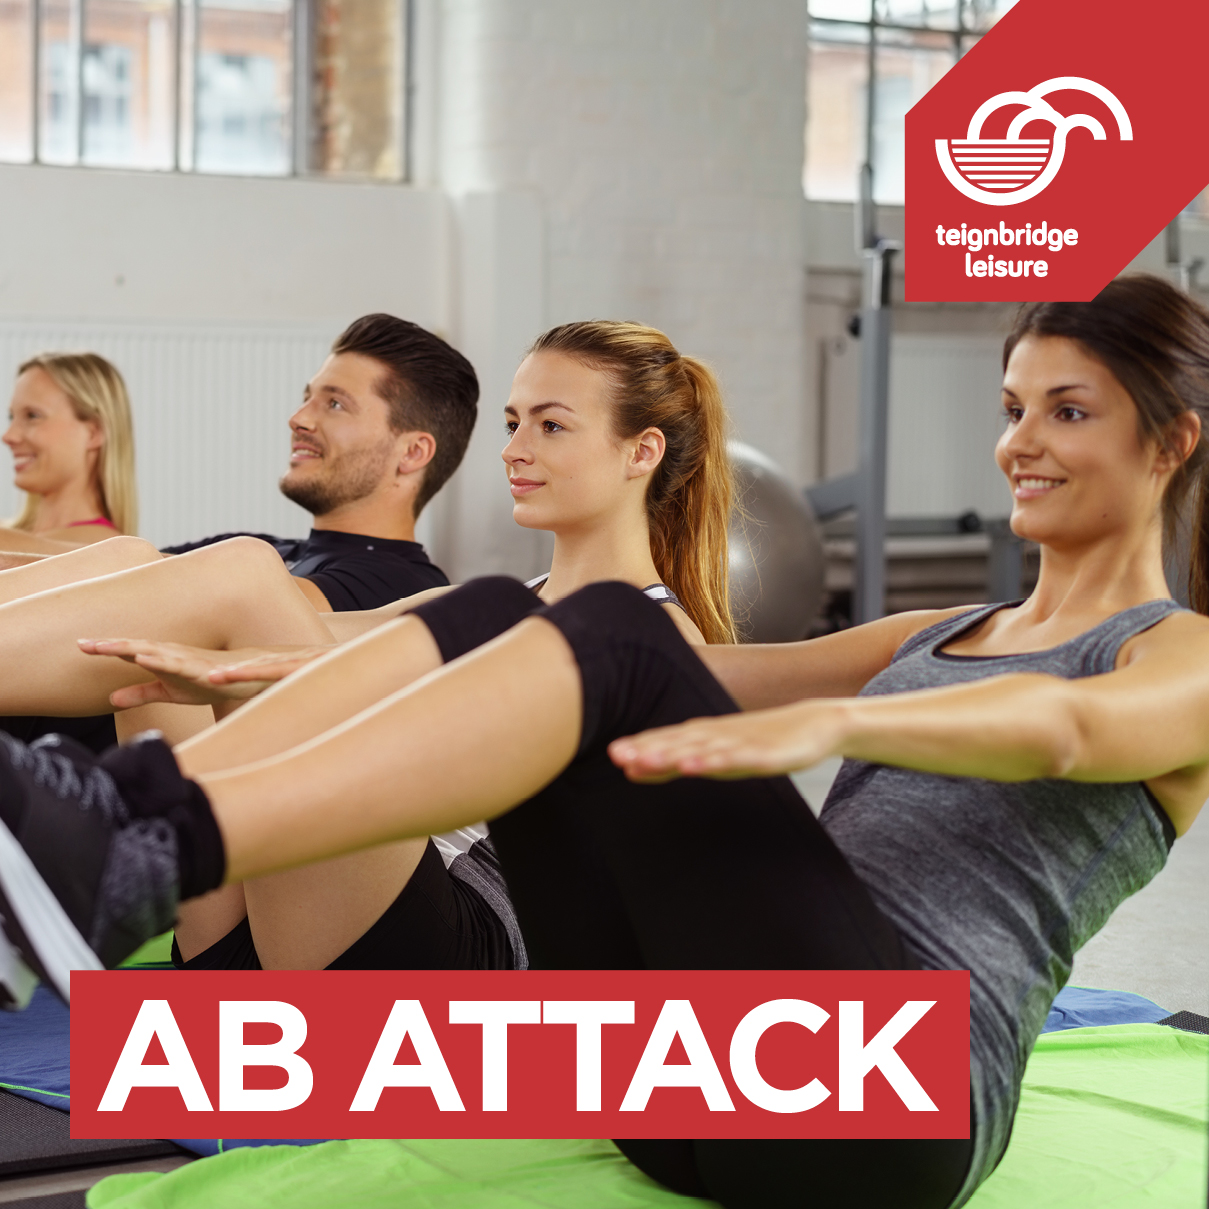 Ab Attack; Leisure; Ab; workout